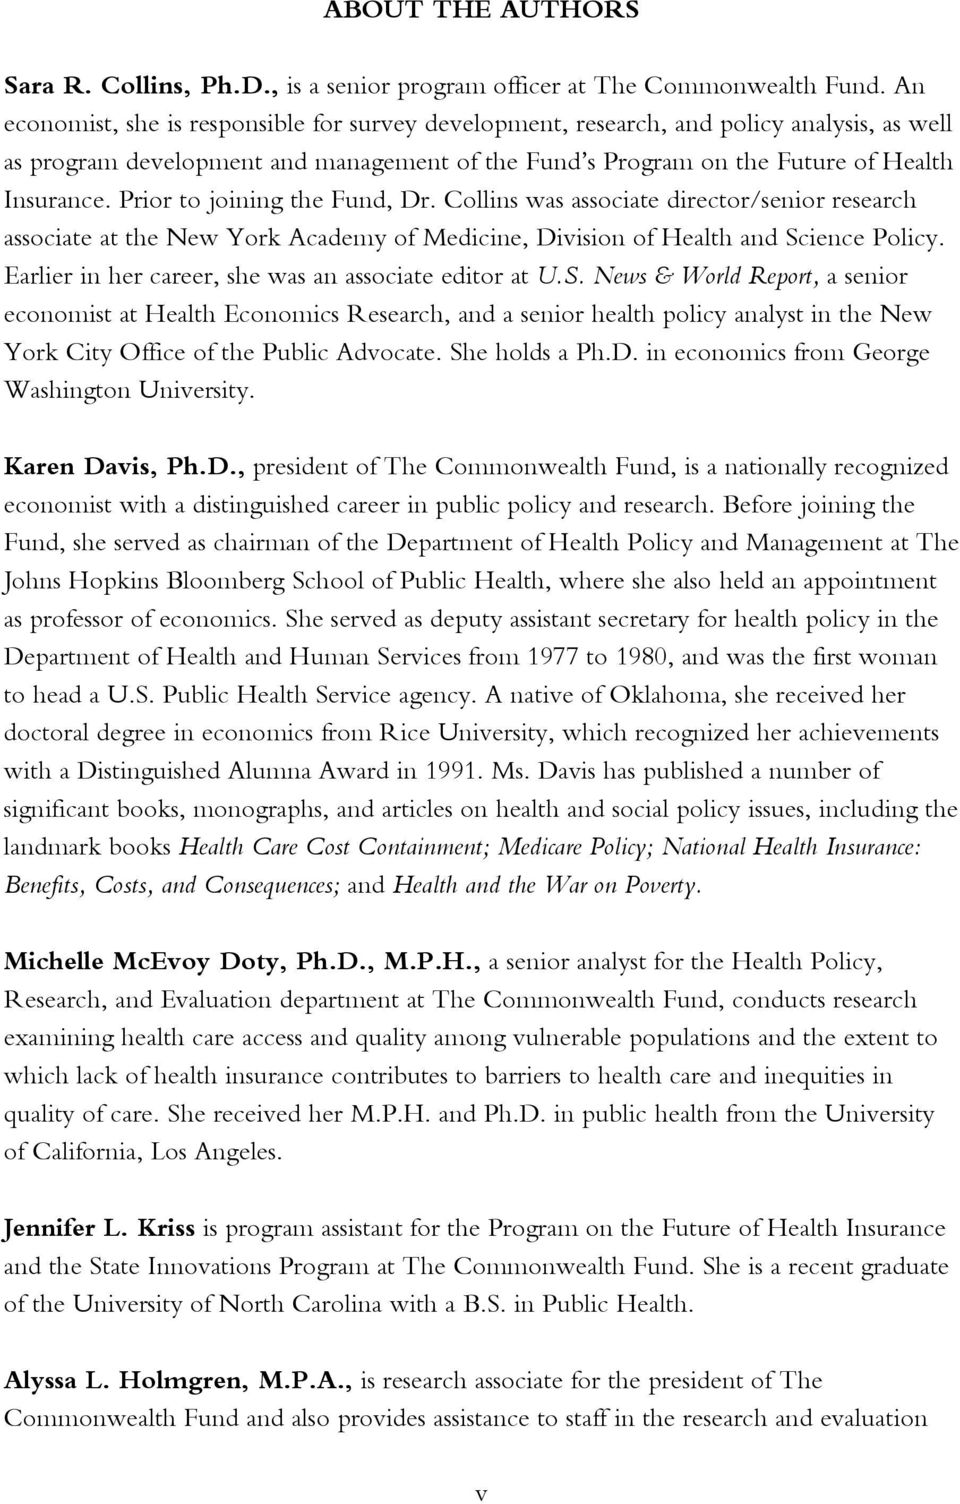 Prior to joining the Fund, Dr. Collins was associate director/senior research associate at the New York Academy of Medicine, Division of Health and Science Policy.